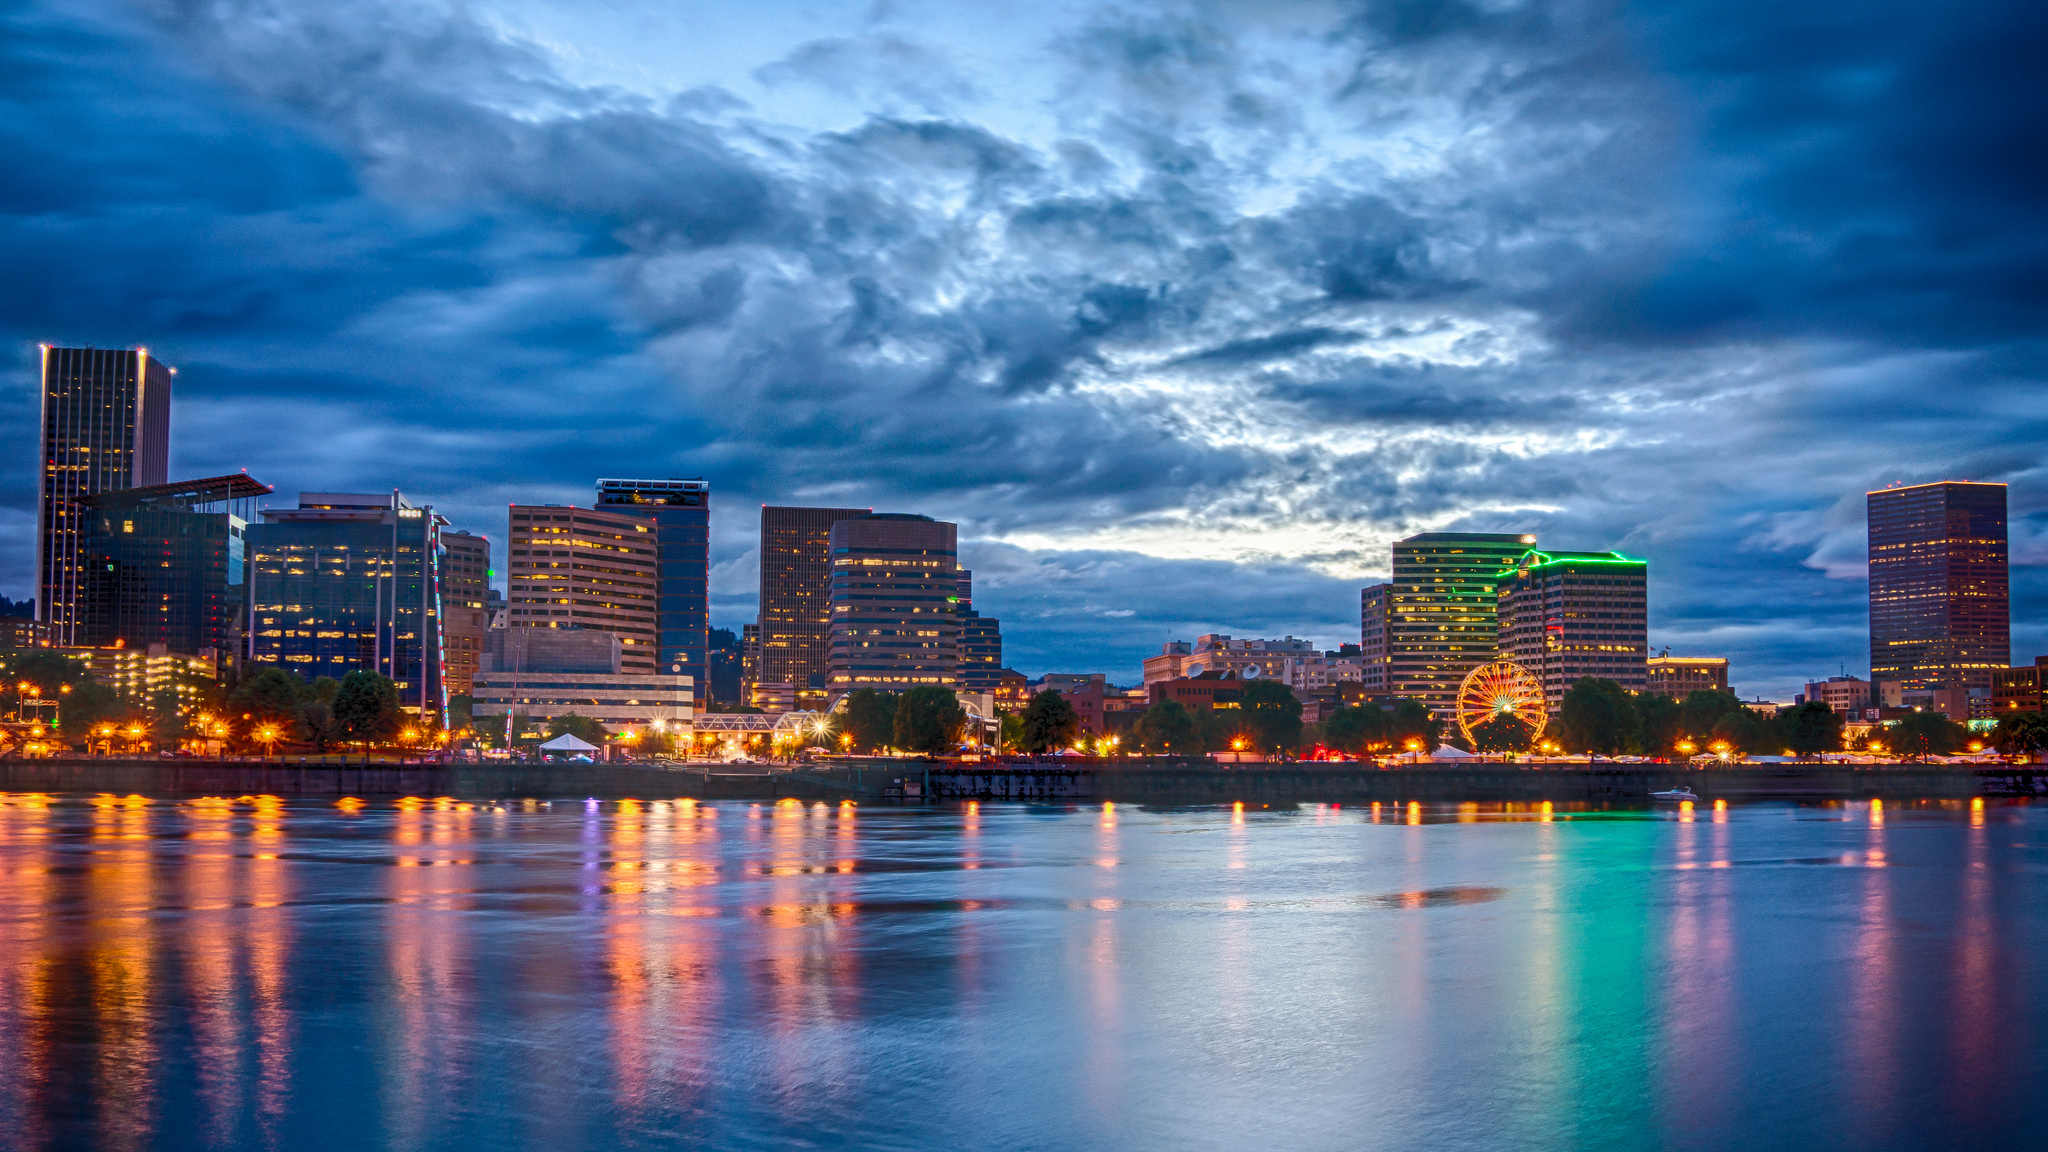 Willamette River in downtown Portland, OR | Photo by Aaron Hockley